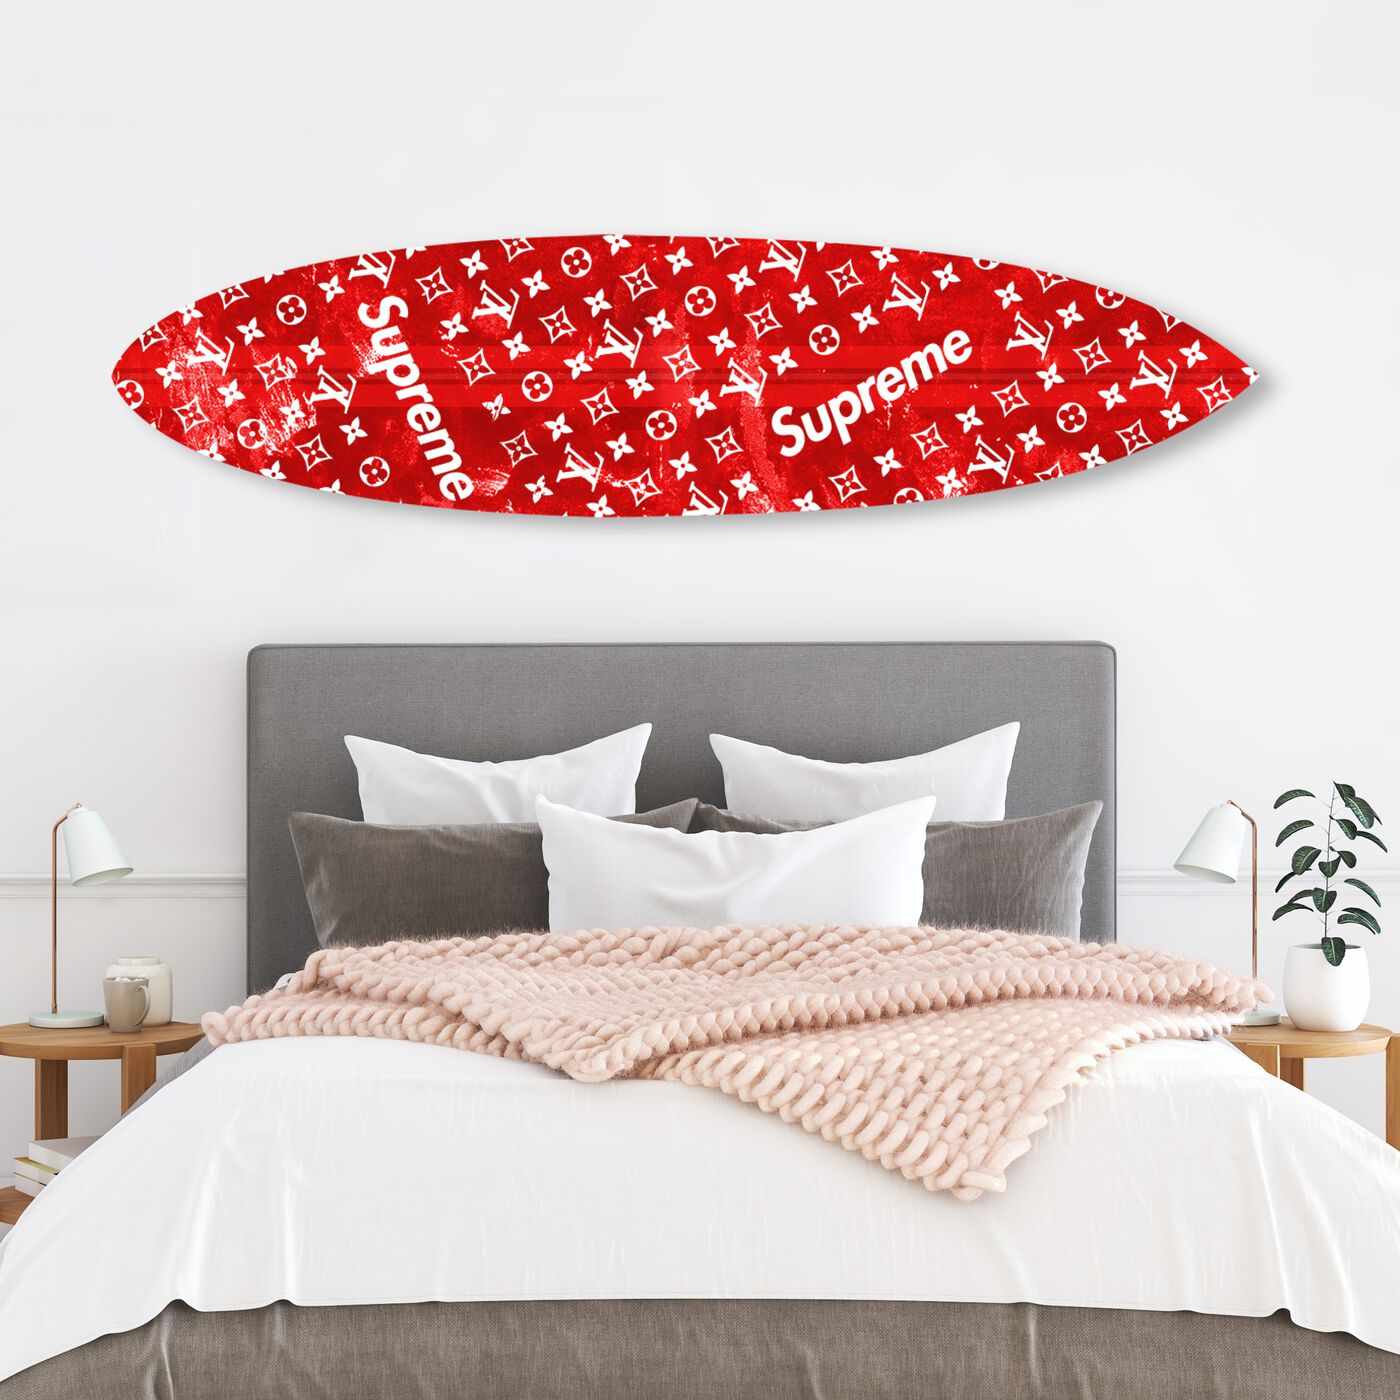 Red Urban Surfboard